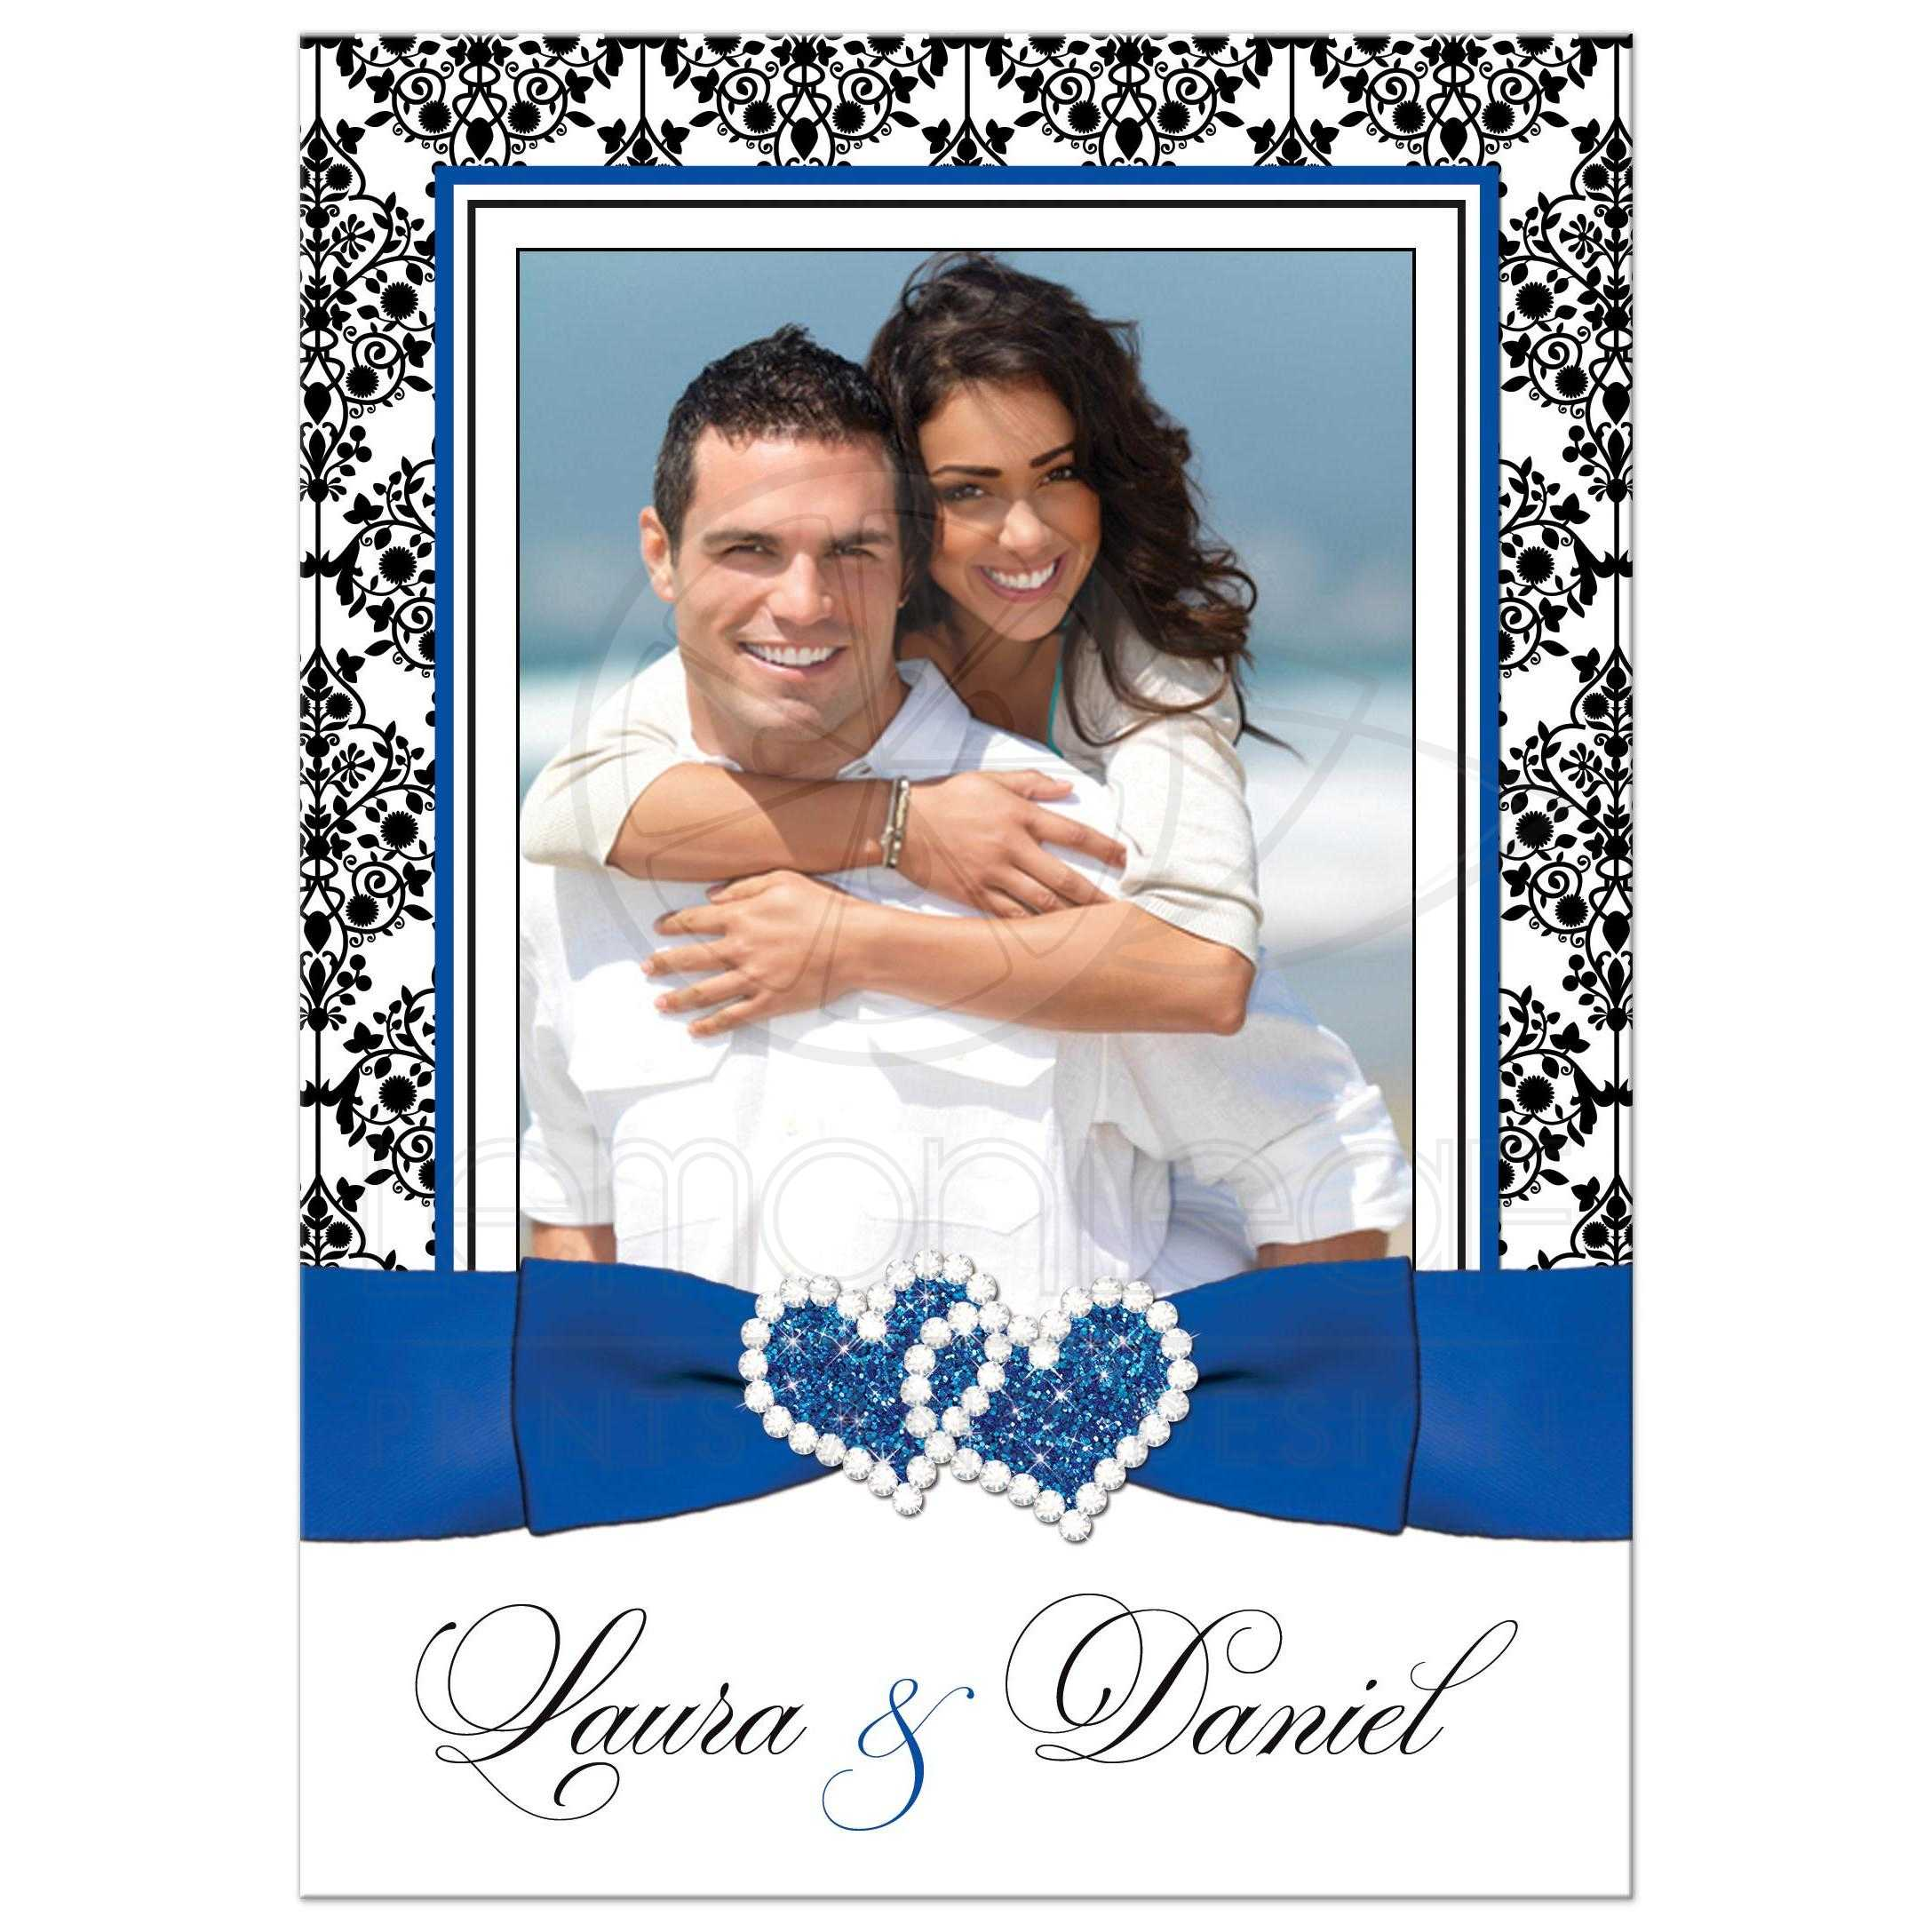 Photo template wedding invite royal blue white black damask royal blue black and white damask photo template wedding invitations with ribbon stopboris Image collections